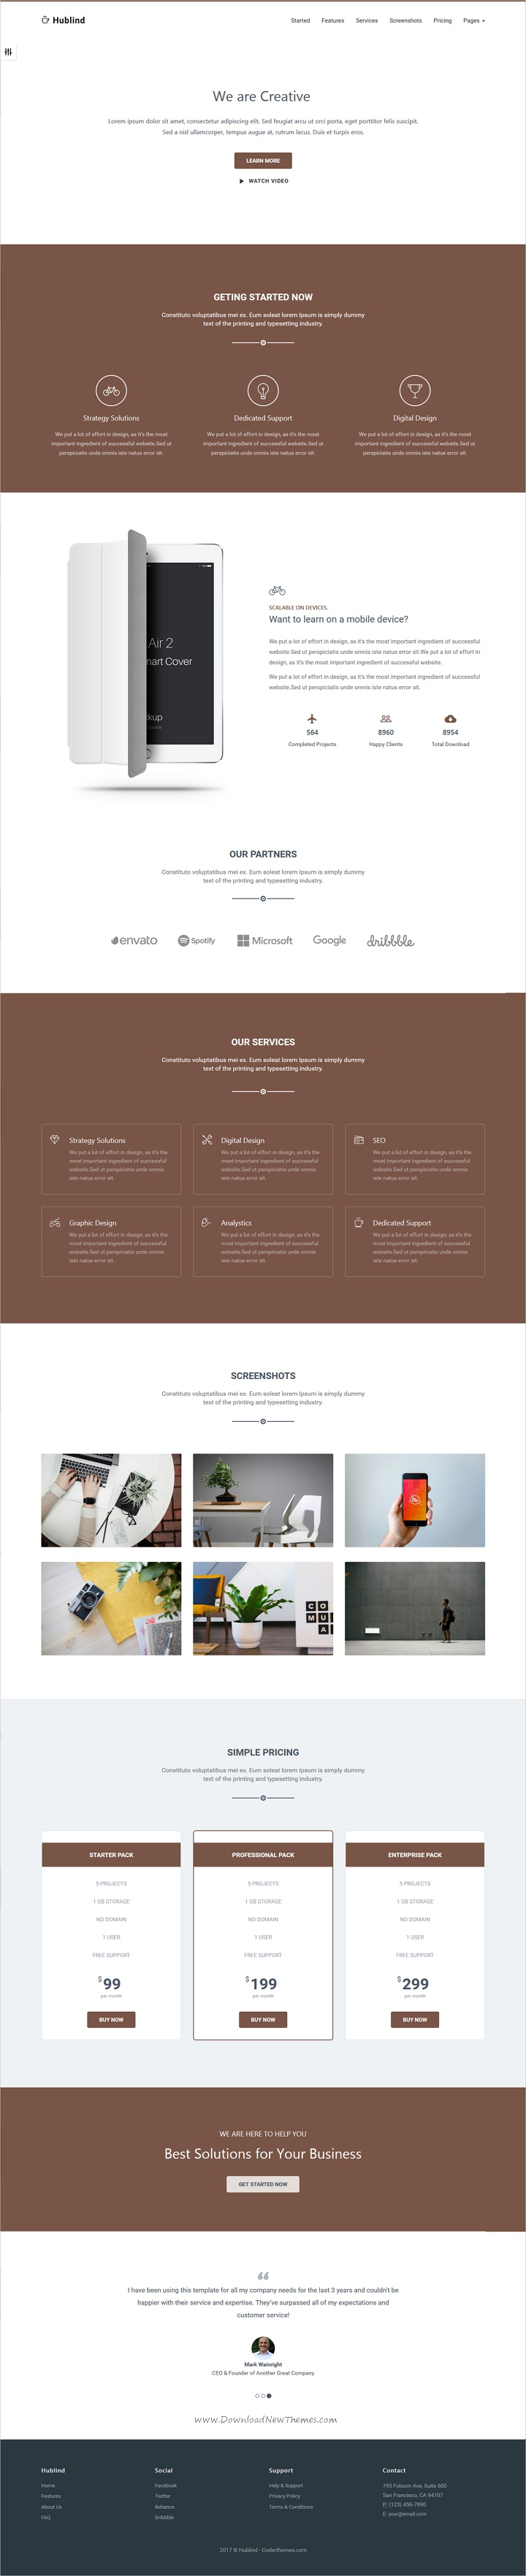 Hublind Is Clean And Modern Design 6in1 Responsive Html5 Template For Professional Landingpage Website Download Web Design Marketing Landing Page Templates